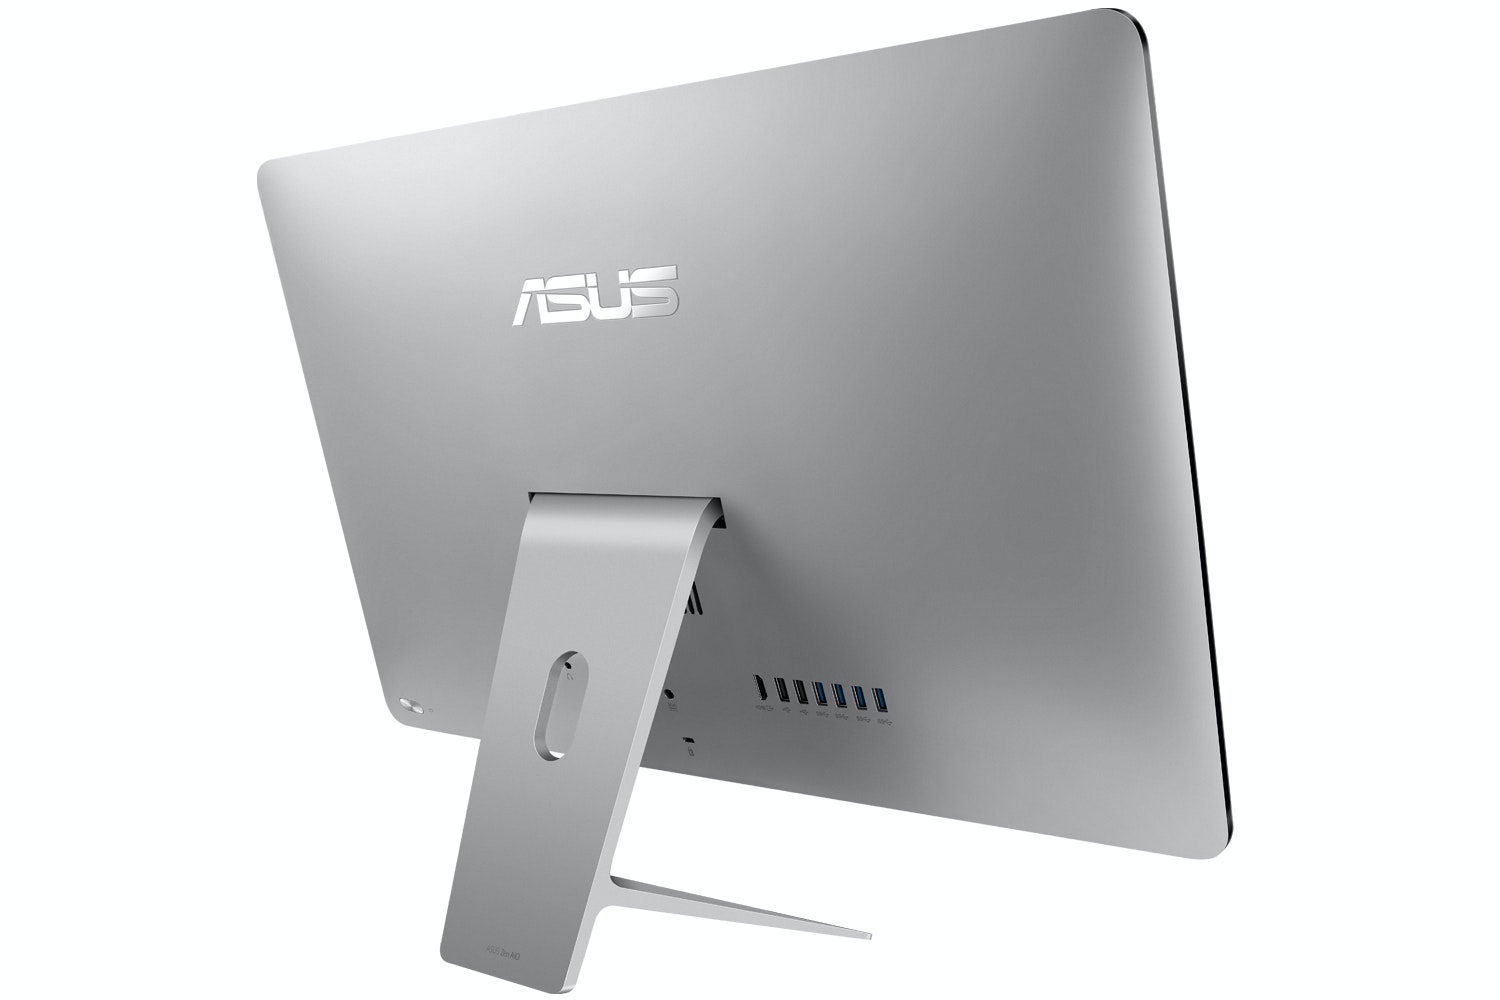 Asus Zen Touch AiO 21.5"